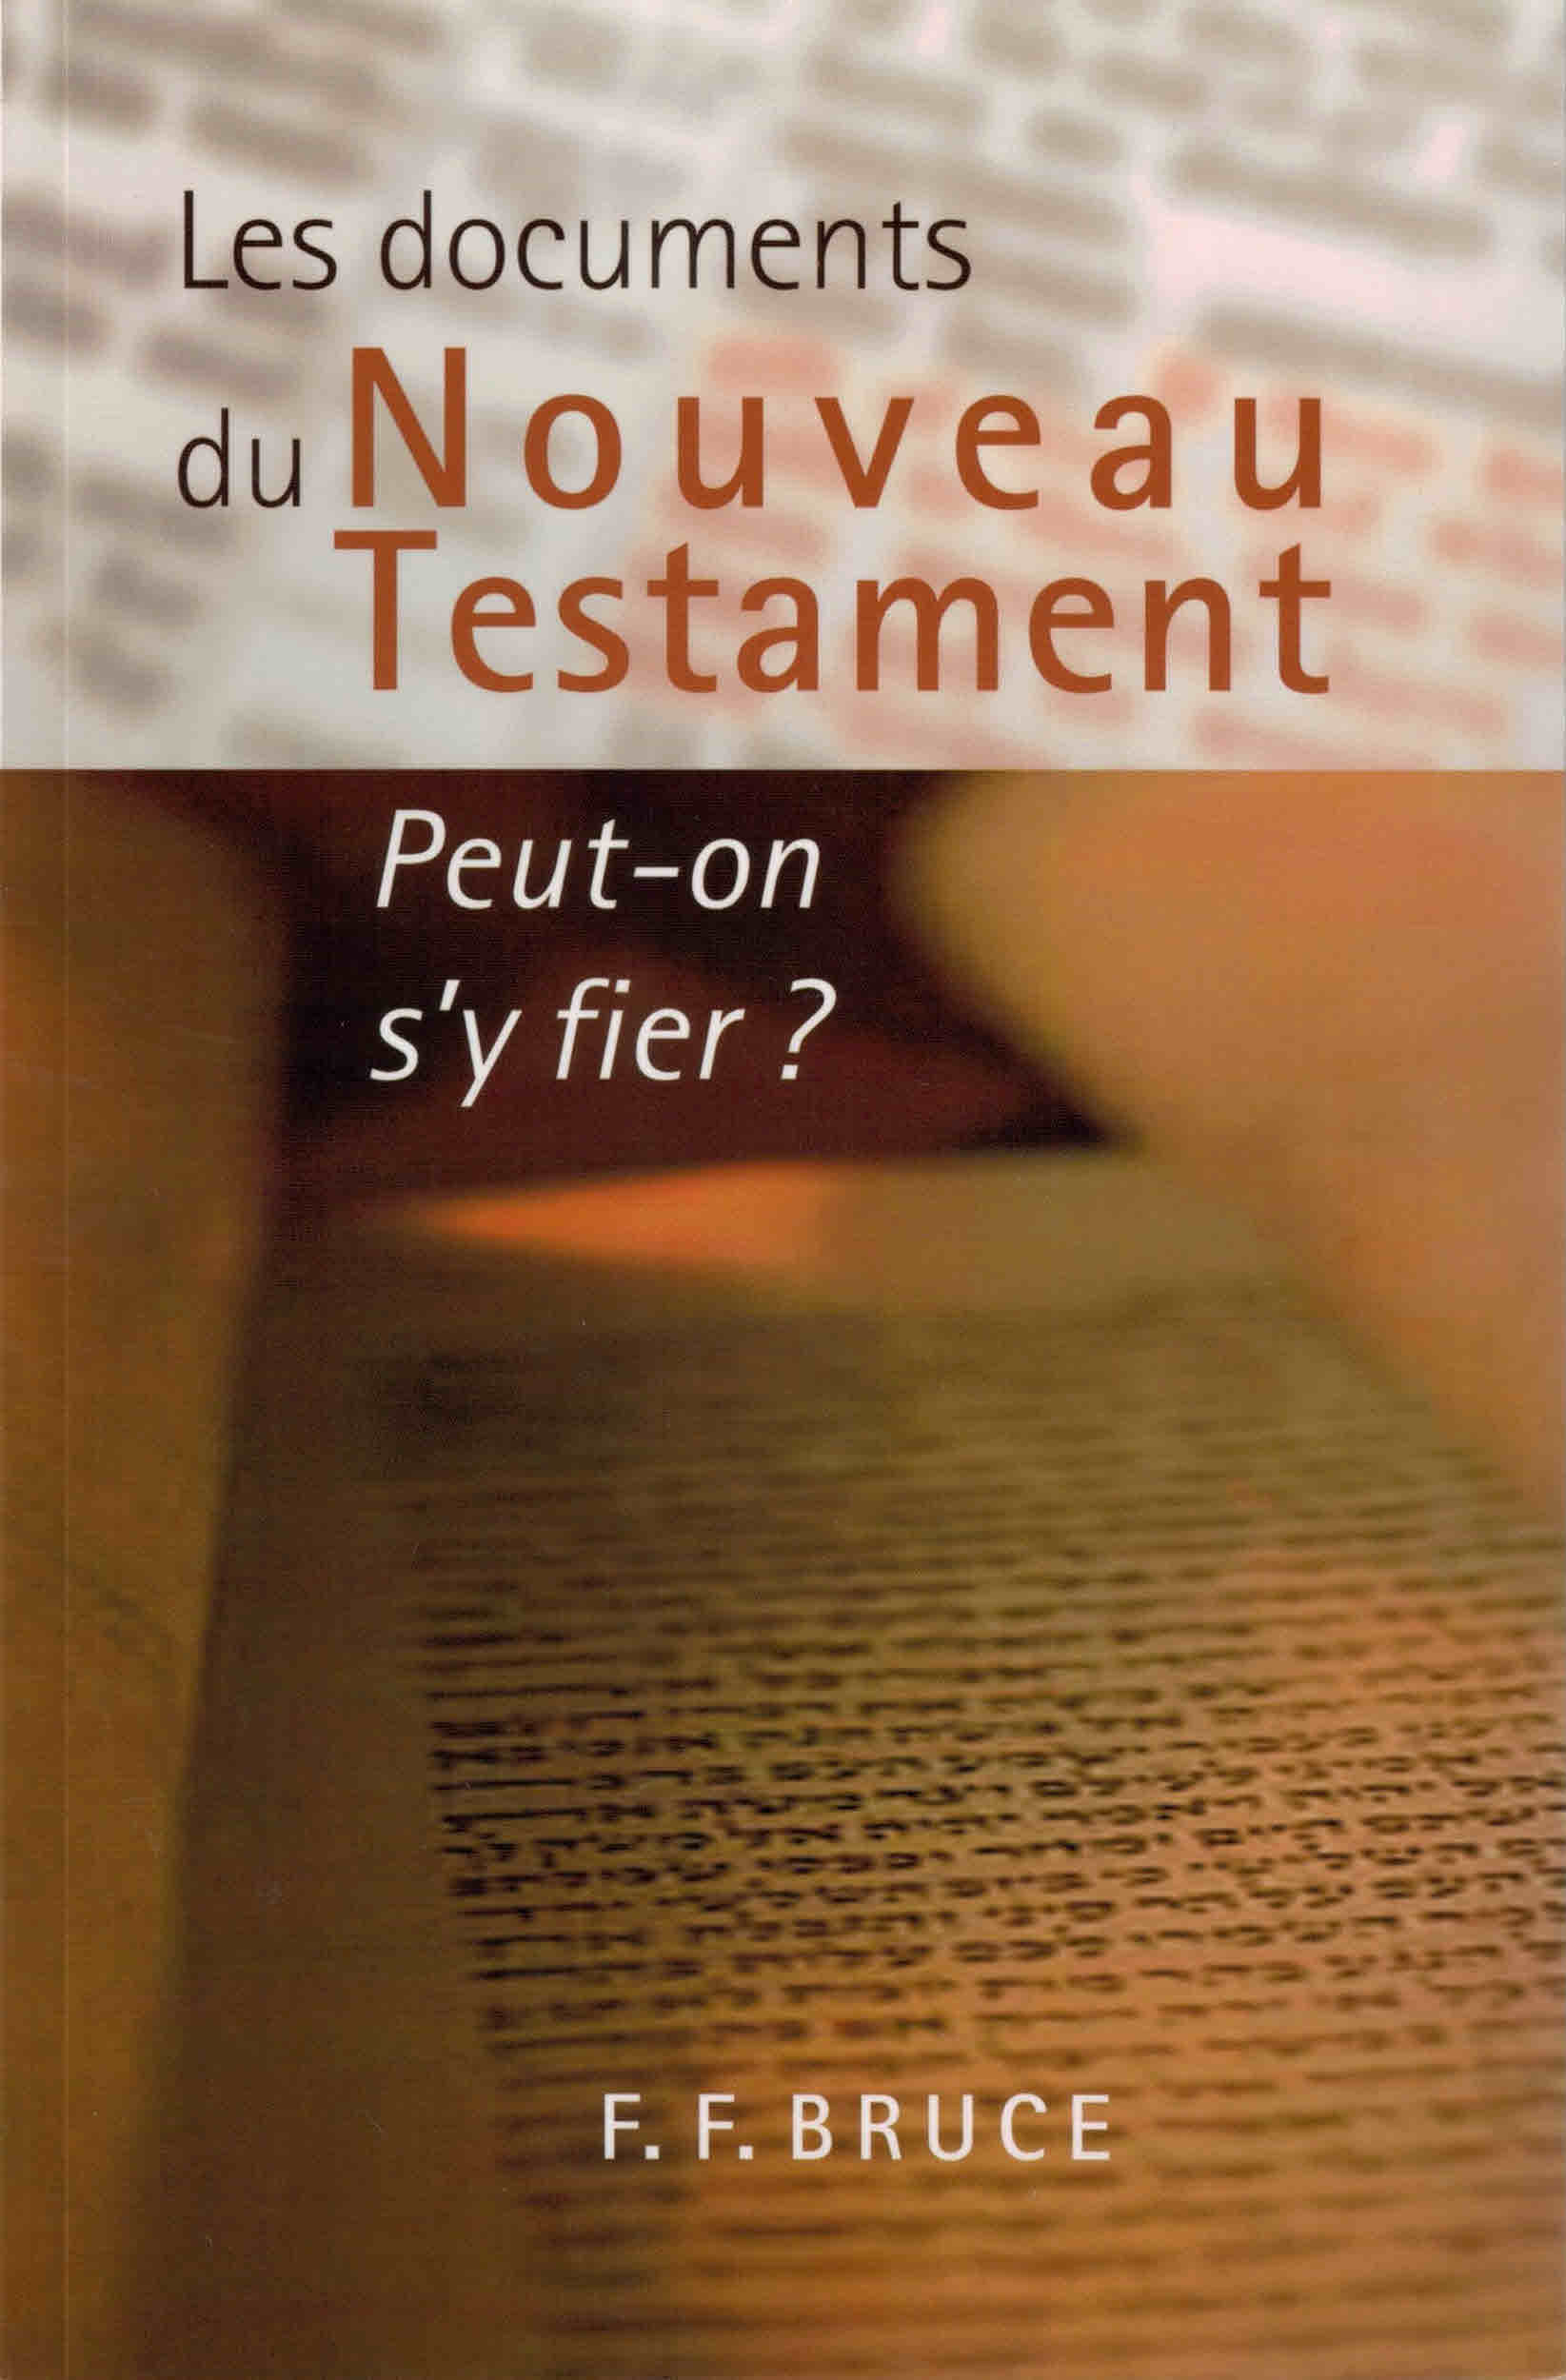 Les documents du Nouveau Testament peut-on s'y fier ?